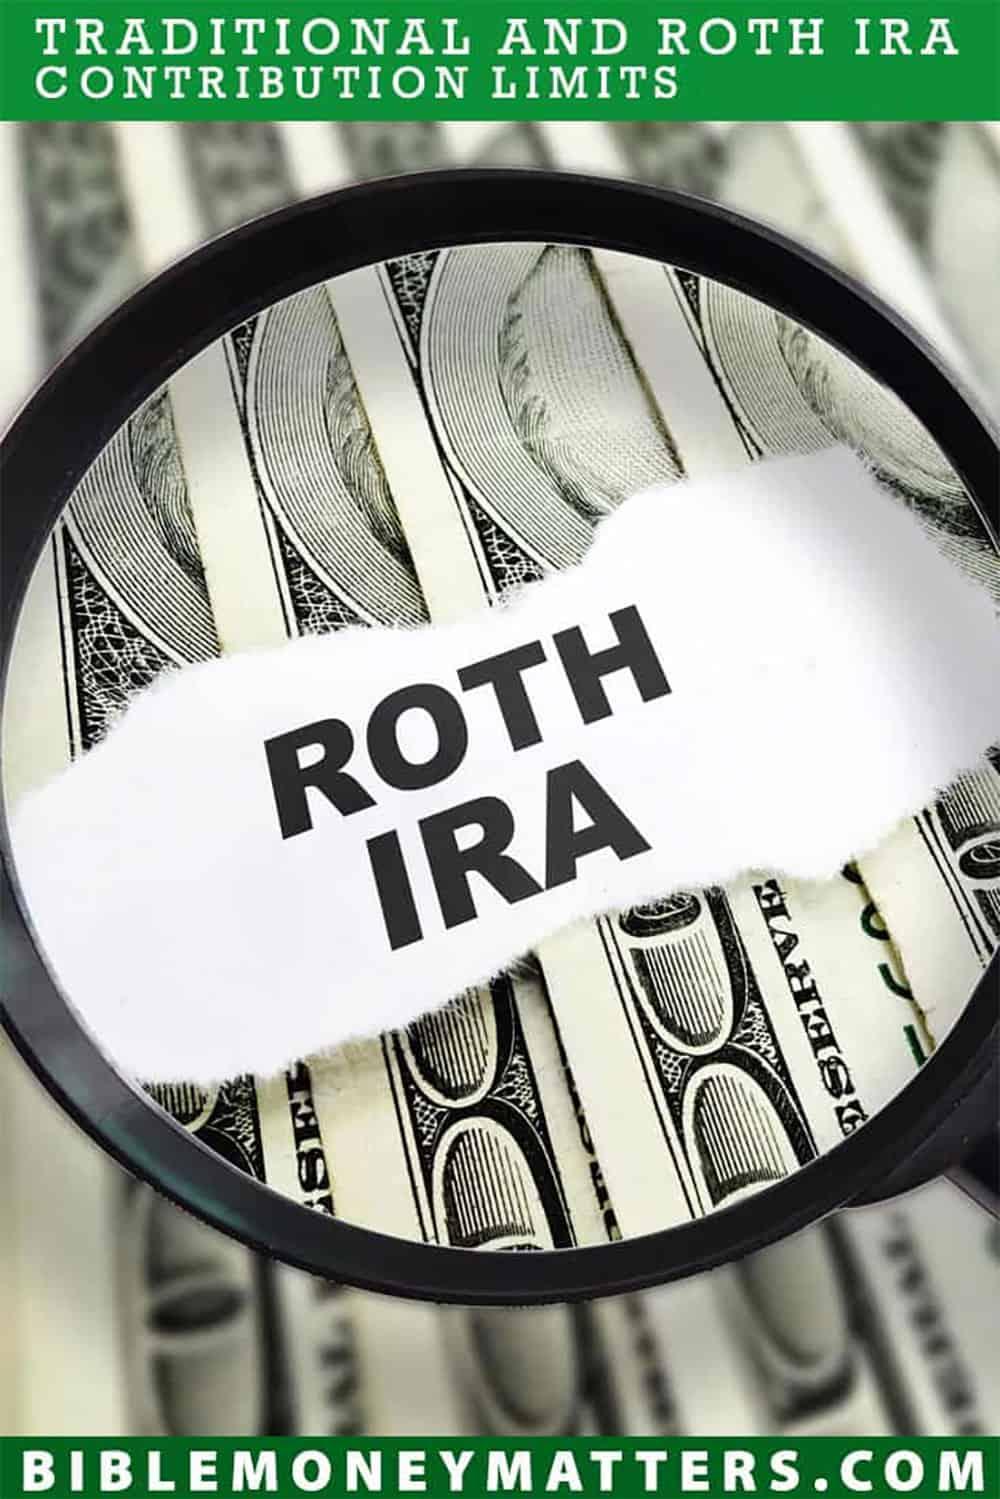 Traditional And Roth IRA Contribution Limits Announced